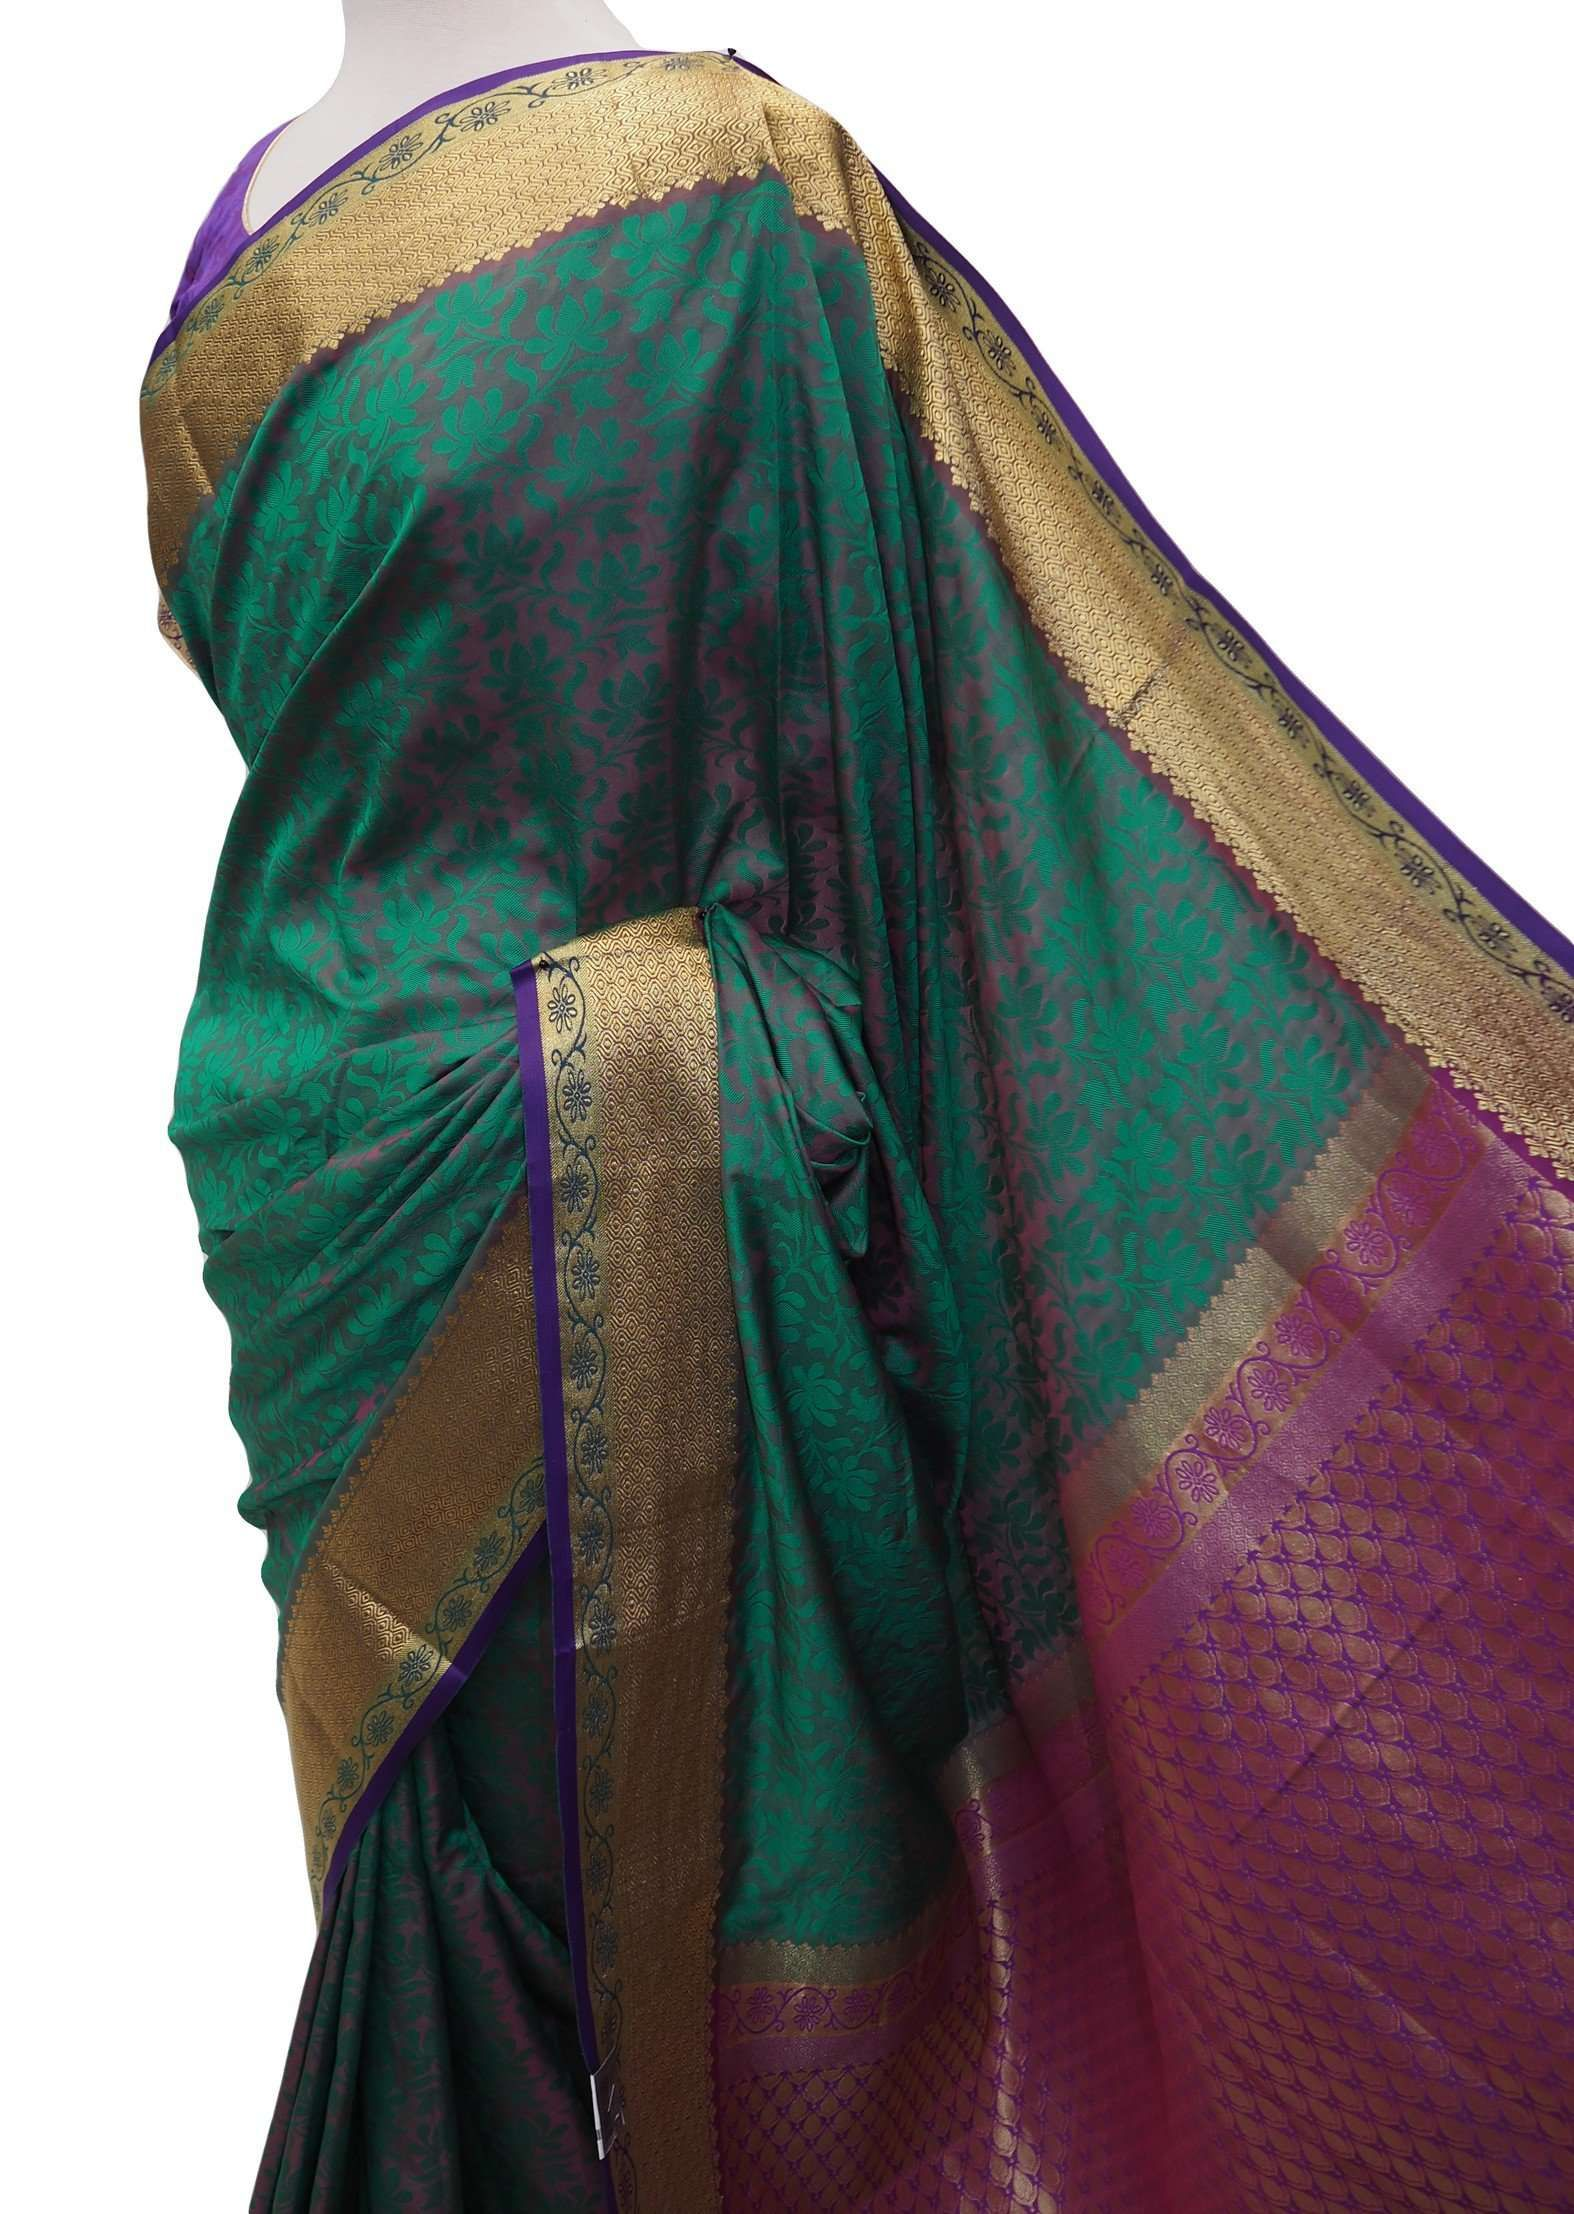 Find this amazing Handloom Banglori silky traditional saree with Ready Blouse - BollywoodParty - OF8214VT 0918 online or at our shop in Tooting, London. This Handloom Banglori silky traditional saree with Ready Blouse - BollywoodParty - OF8214VT 0918 is sure to win your heart. At only £65.00, this item is an absolute steal! Buy now at Prachy Creations!  Ideal for all occasions such as weddings and Bollywood parties. Banglori Handloom saree with rich border and with well stitched ready made blous